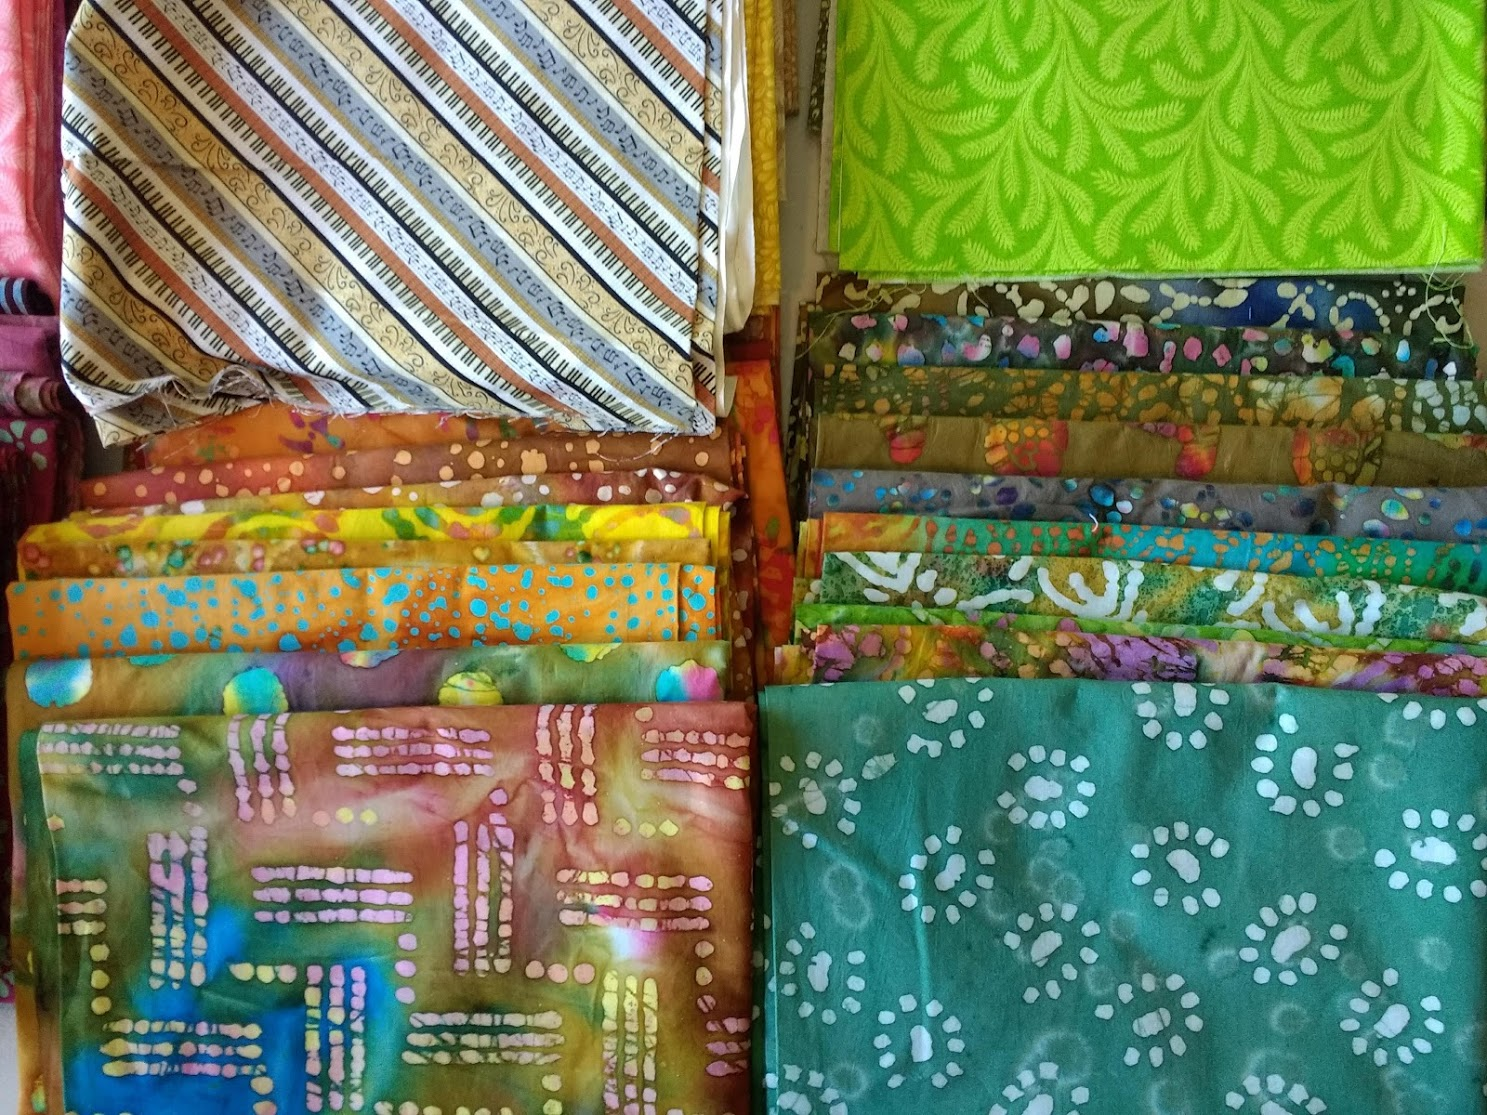 Of all the things quintessential about New England, quilts make the list somewhere near the top. They lend insight into history and for those creating them now, quilts give future generations stories to ponder, patterns to savor.